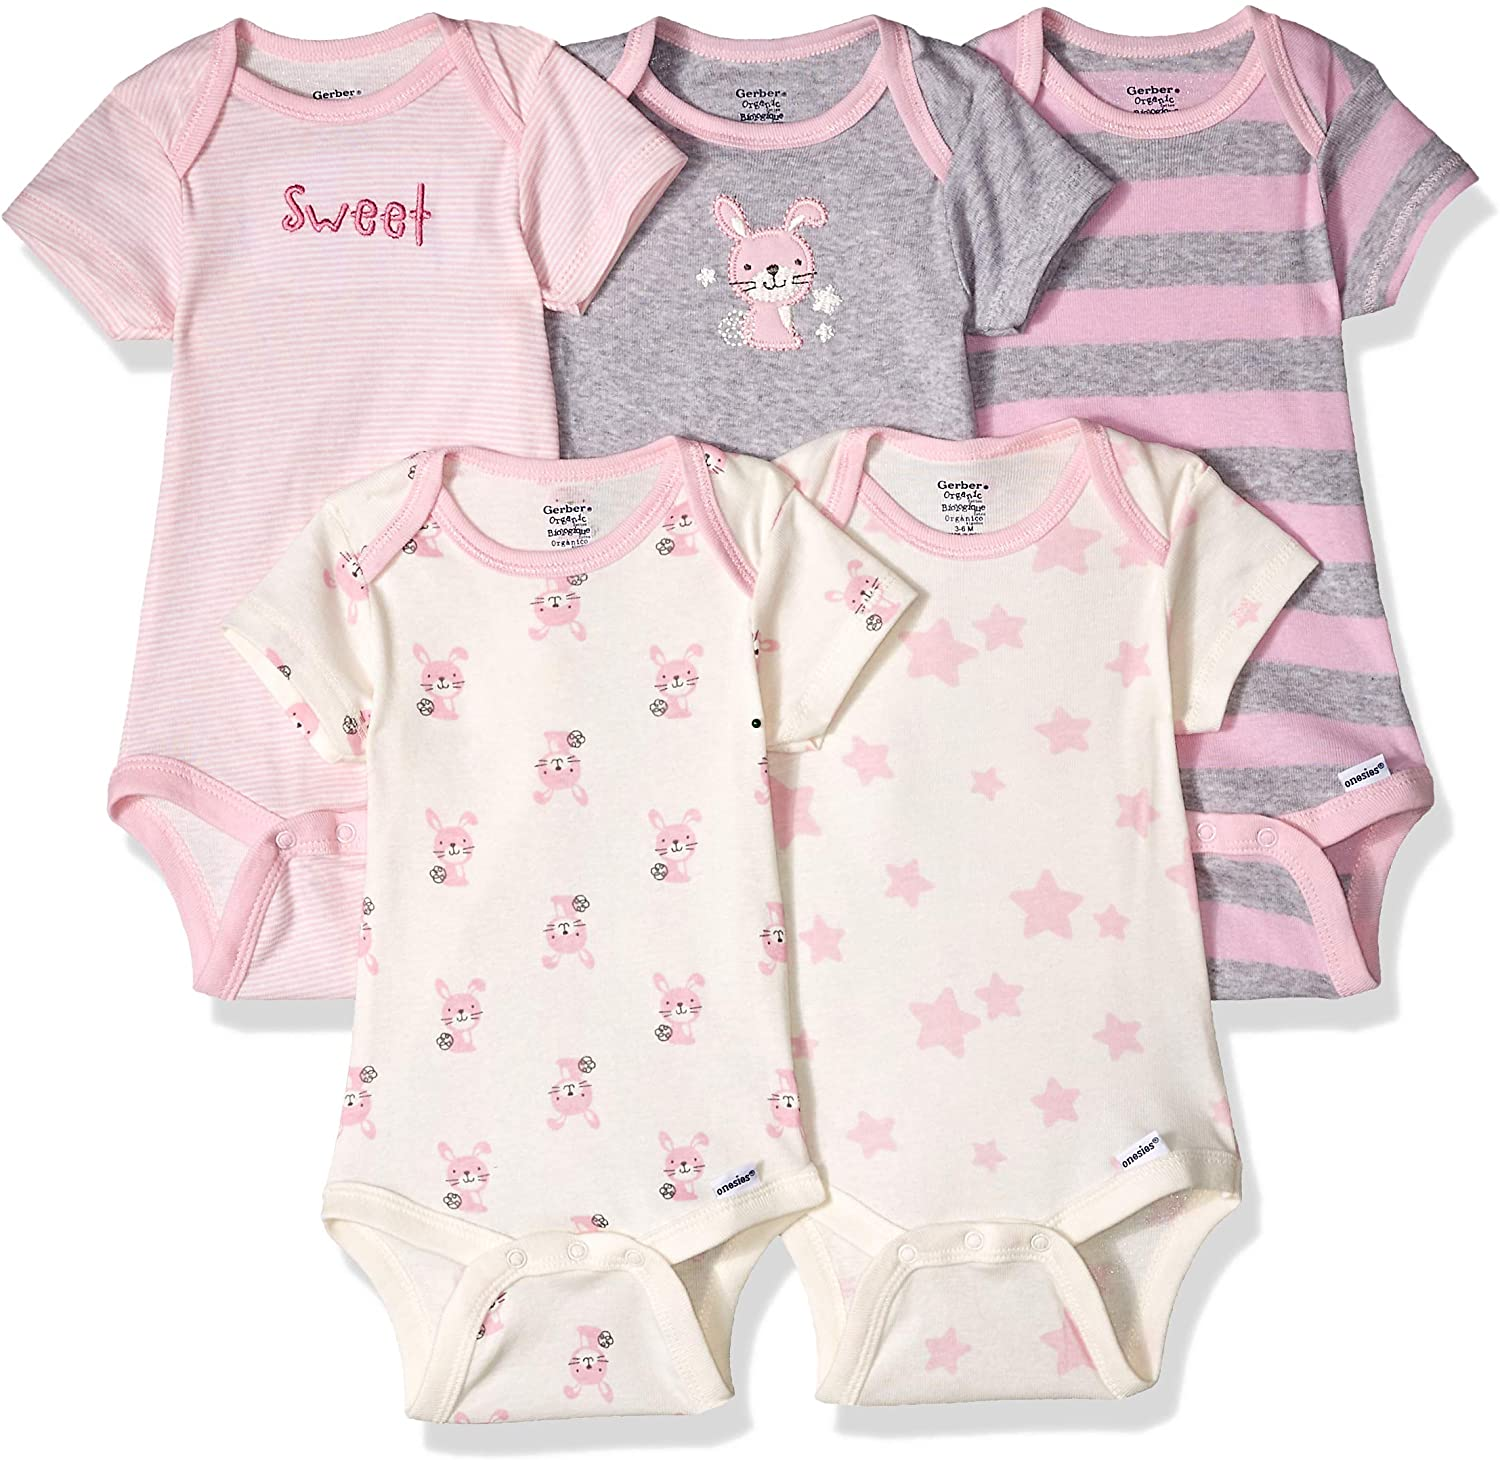 SDHEIJKY Your Hole is My Goal Baby 100/% Cotton Baby Bodysuits Comfy Short Sleeve Onesies